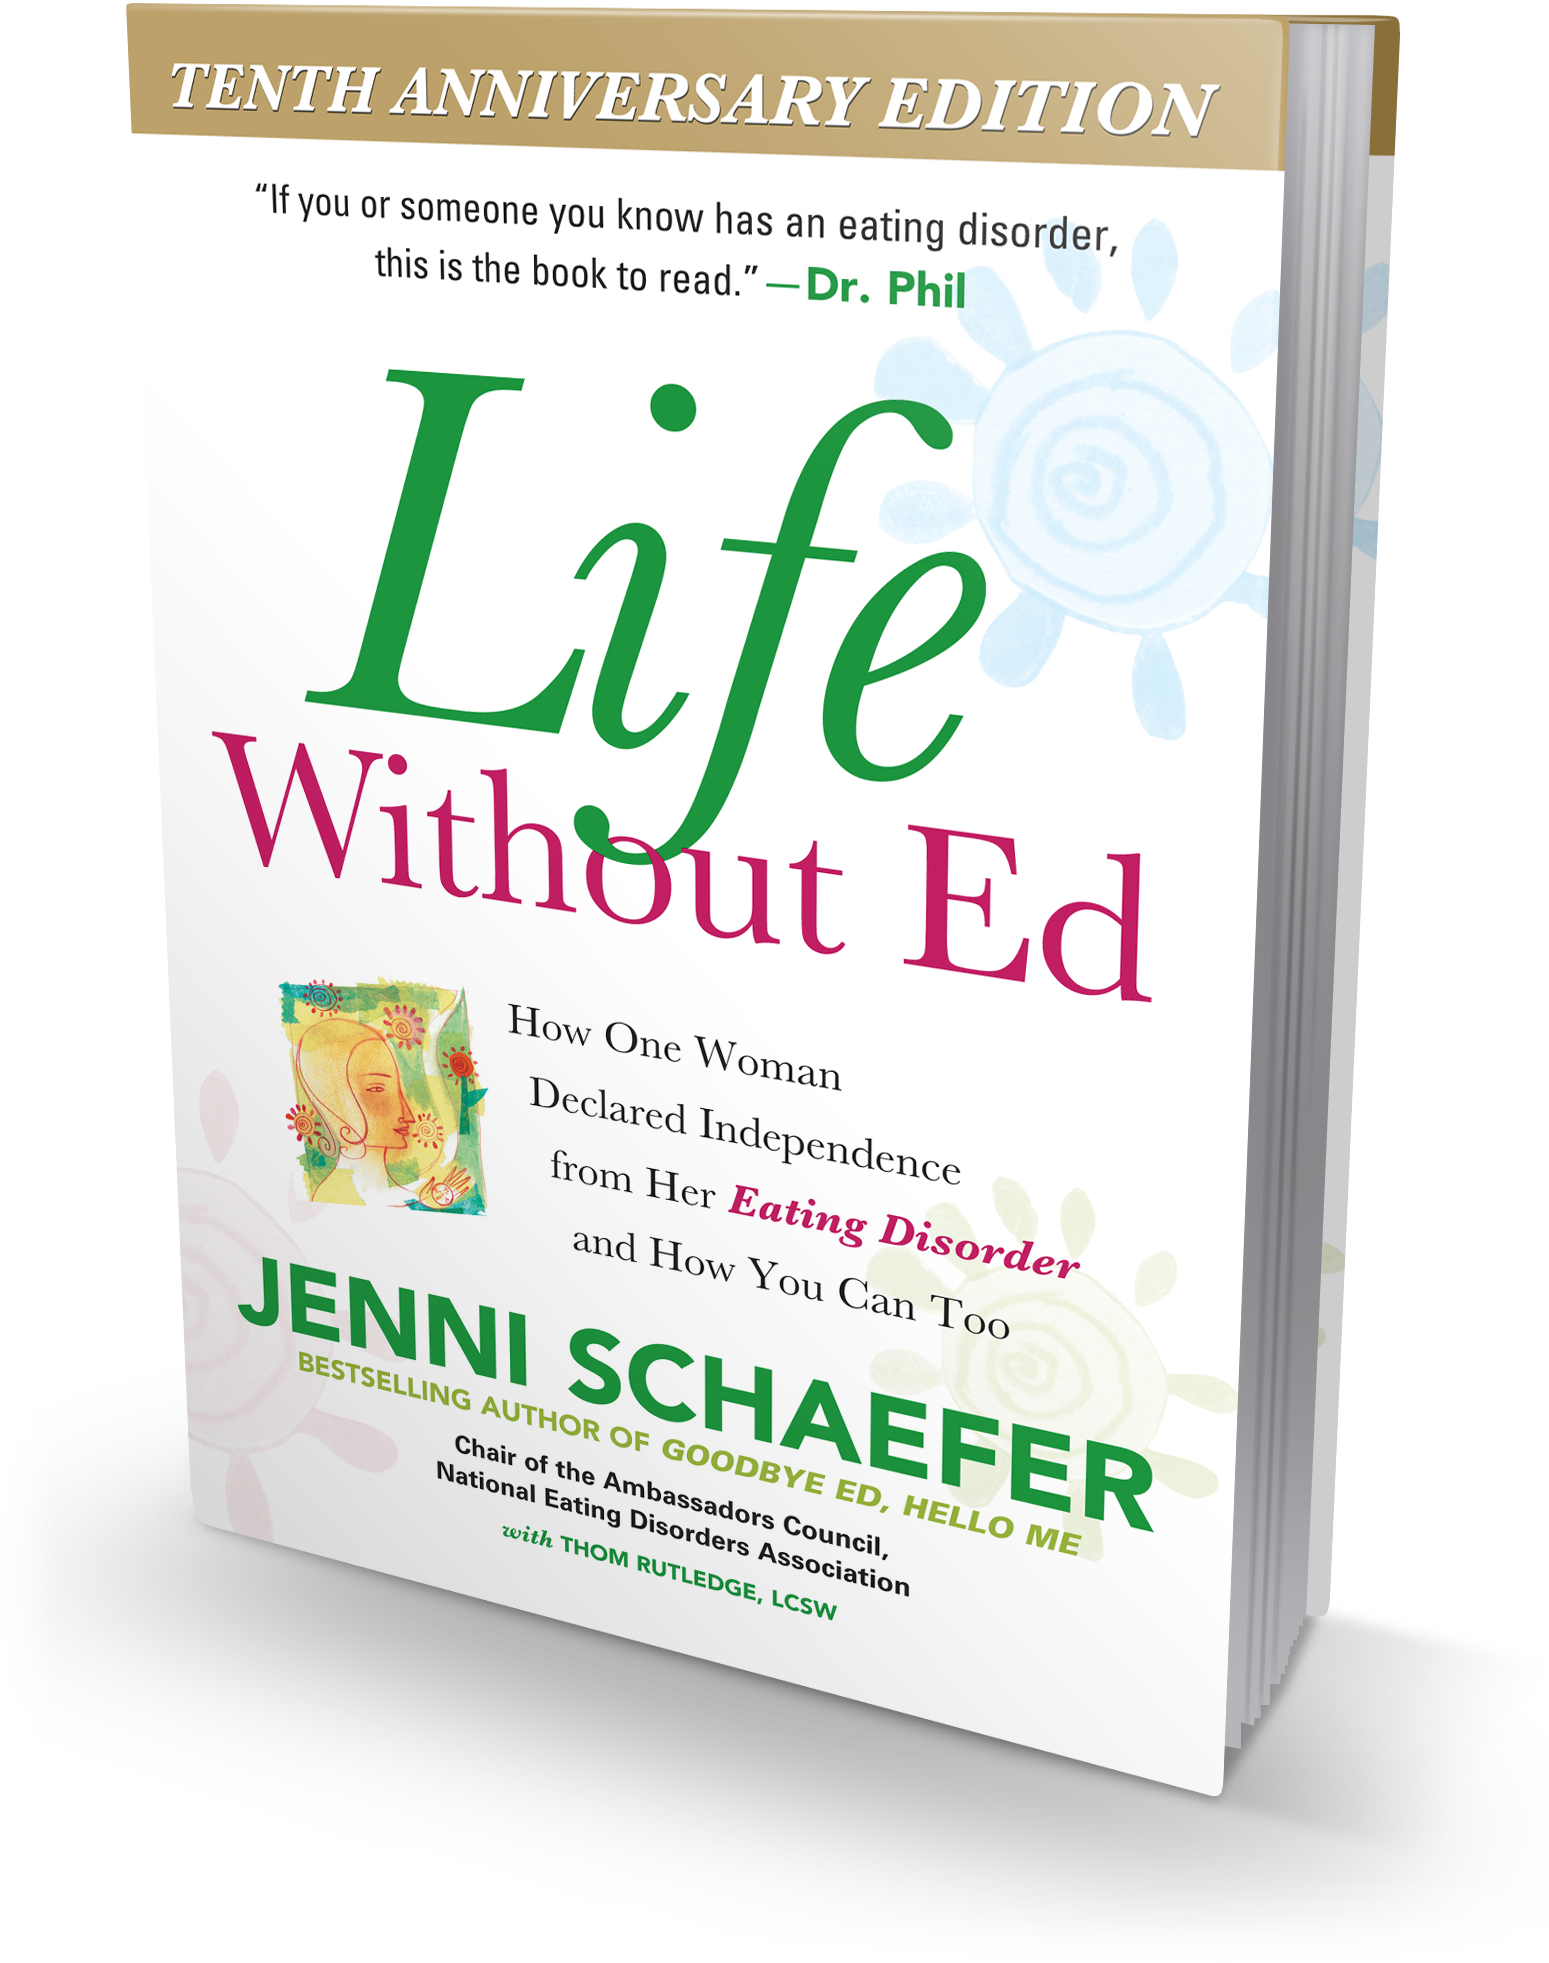 life out ed book eating disorder anorexic jenni schaefer life out ed